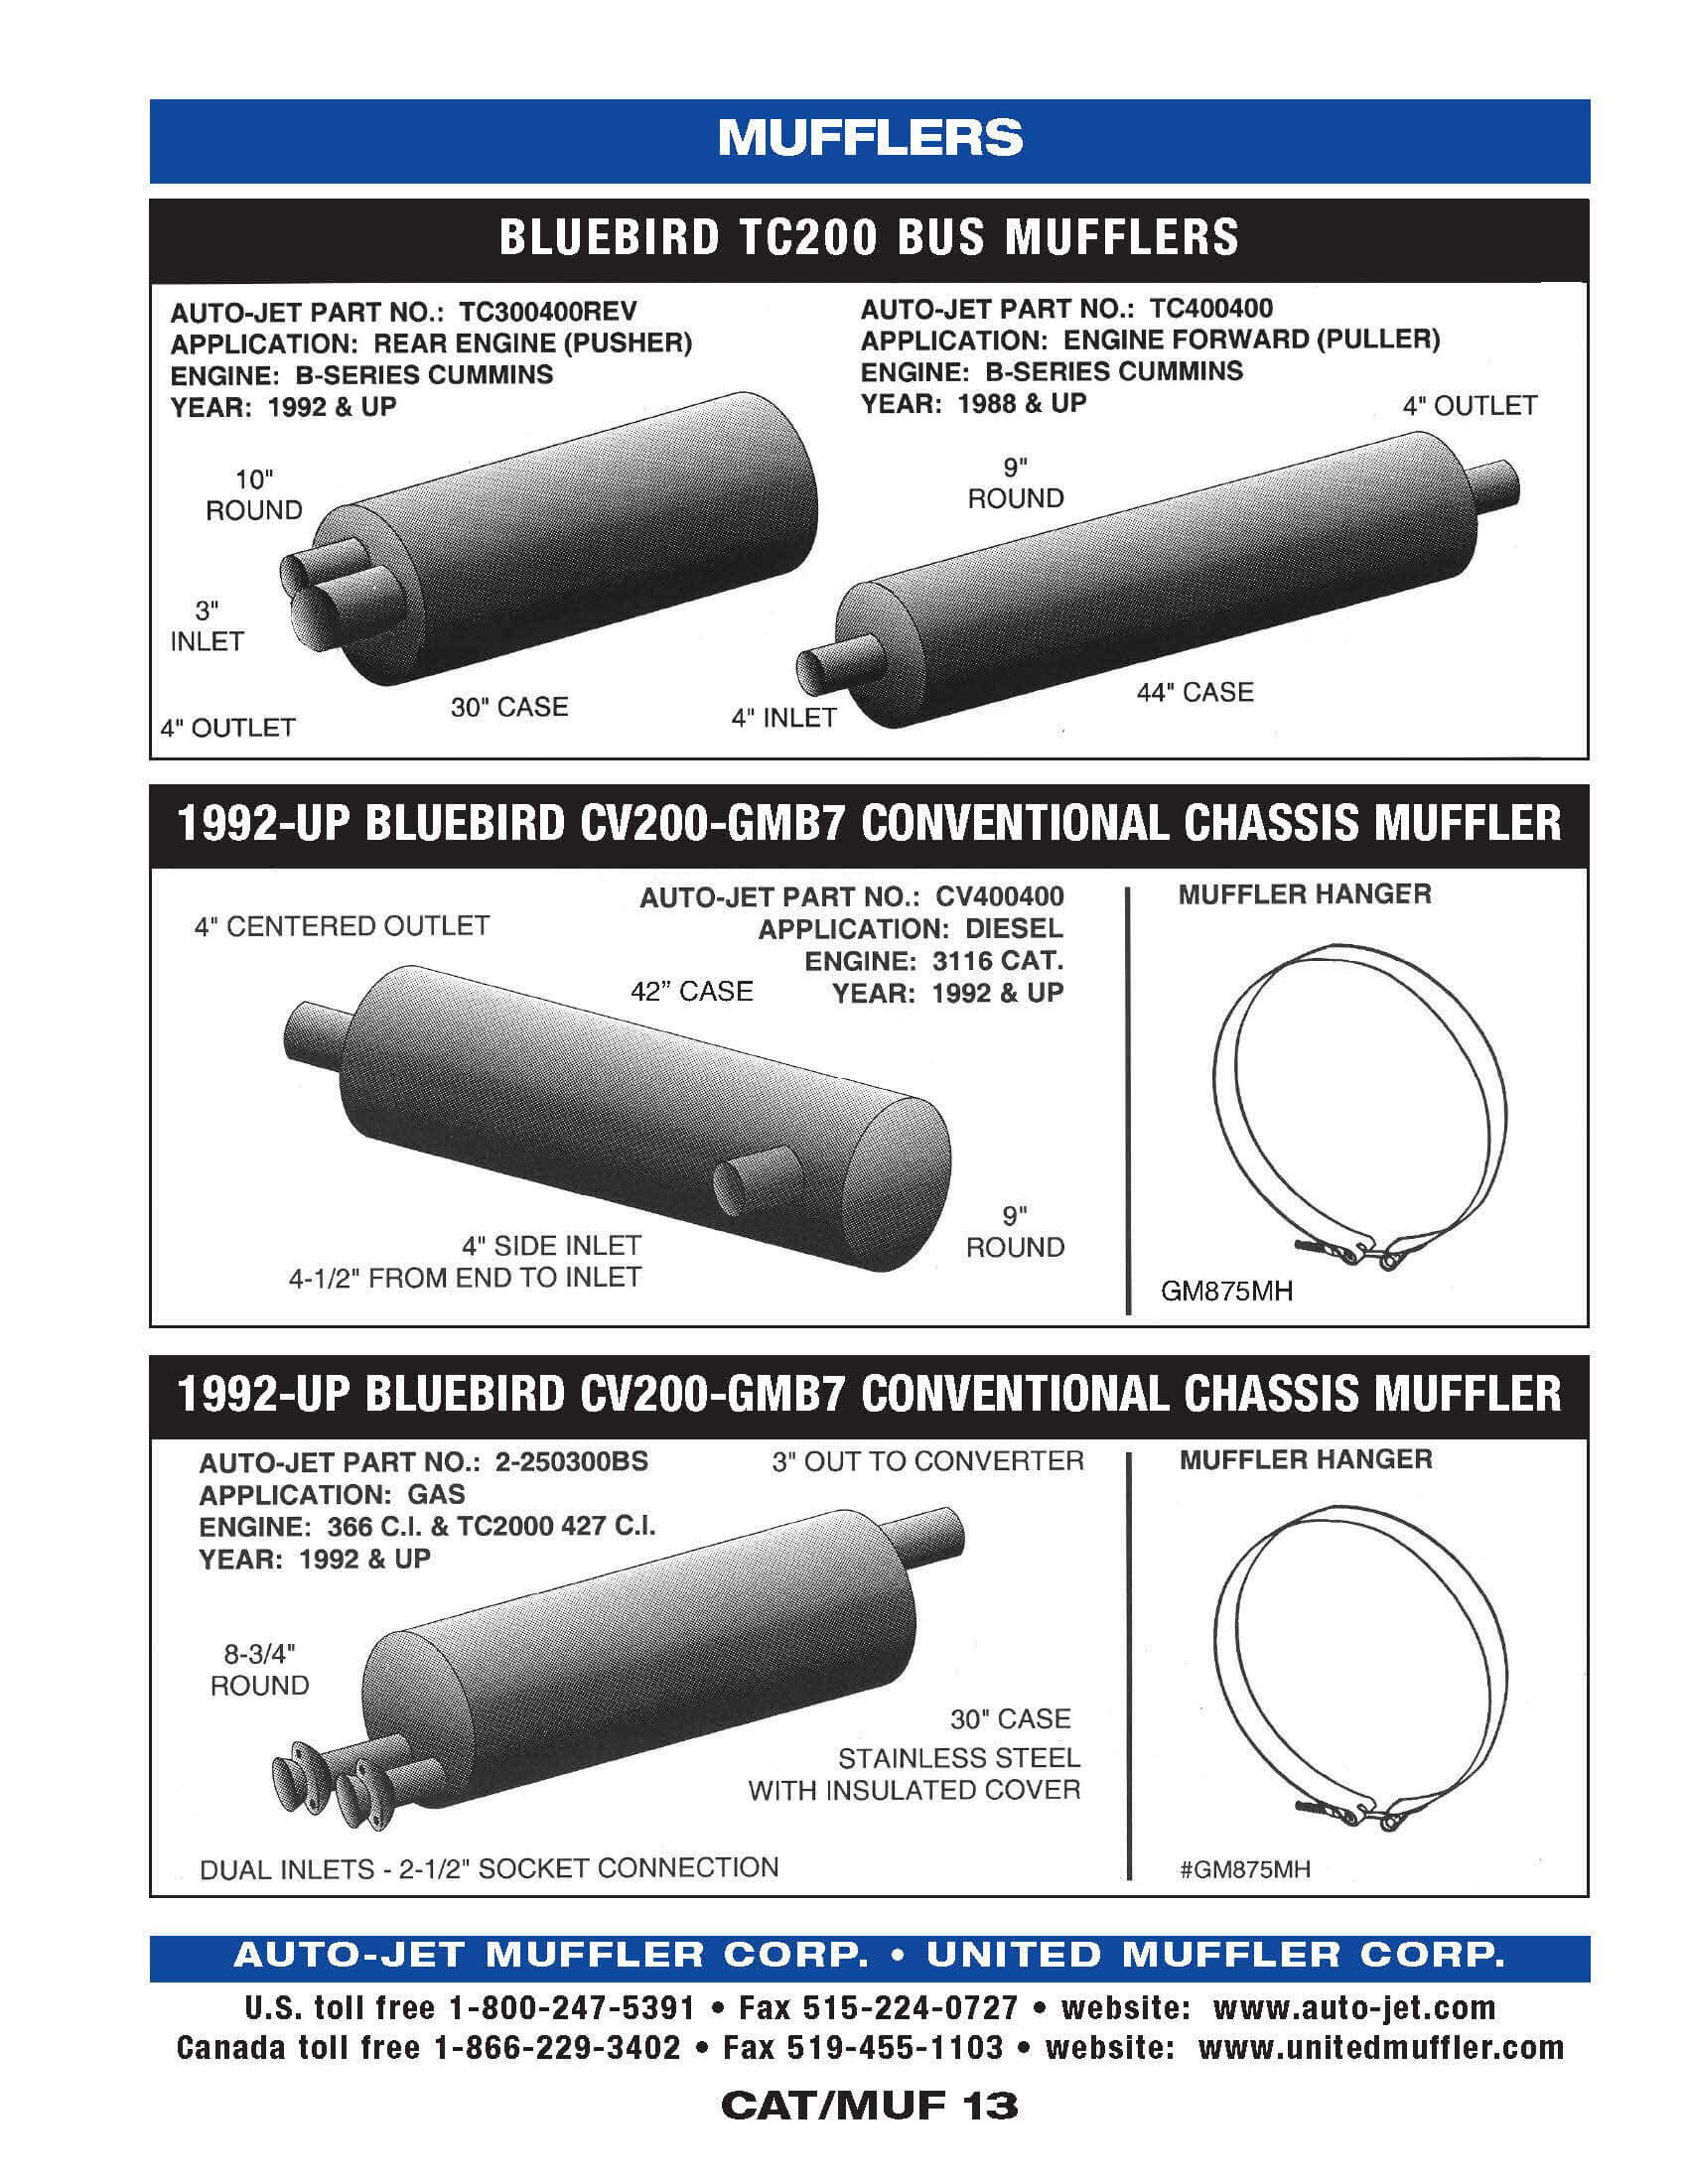 Catalytic | United Muffler Corporation